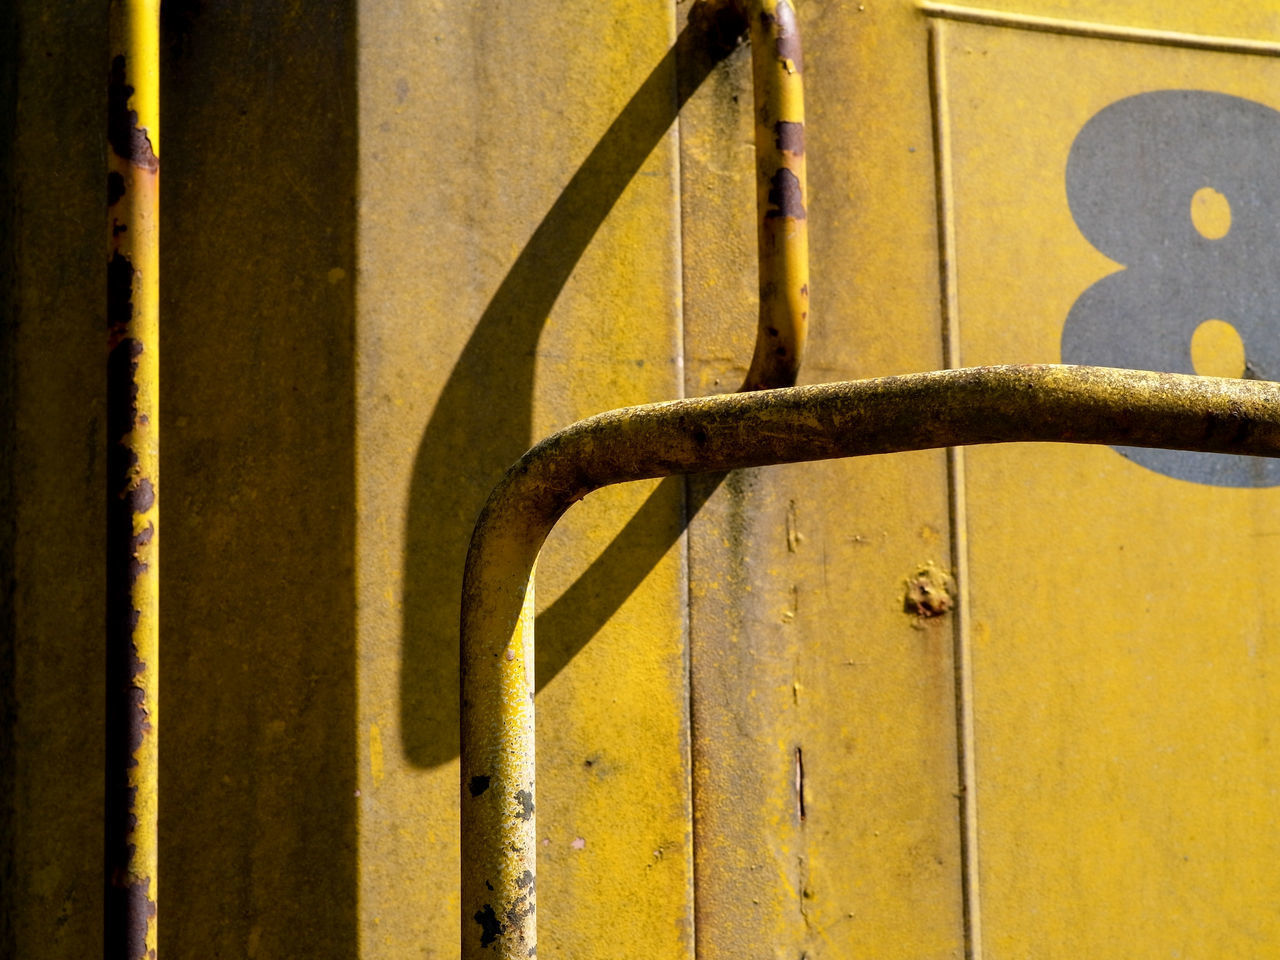 FULL FRAME SHOT OF YELLOW WALL WITH RUSTY METAL